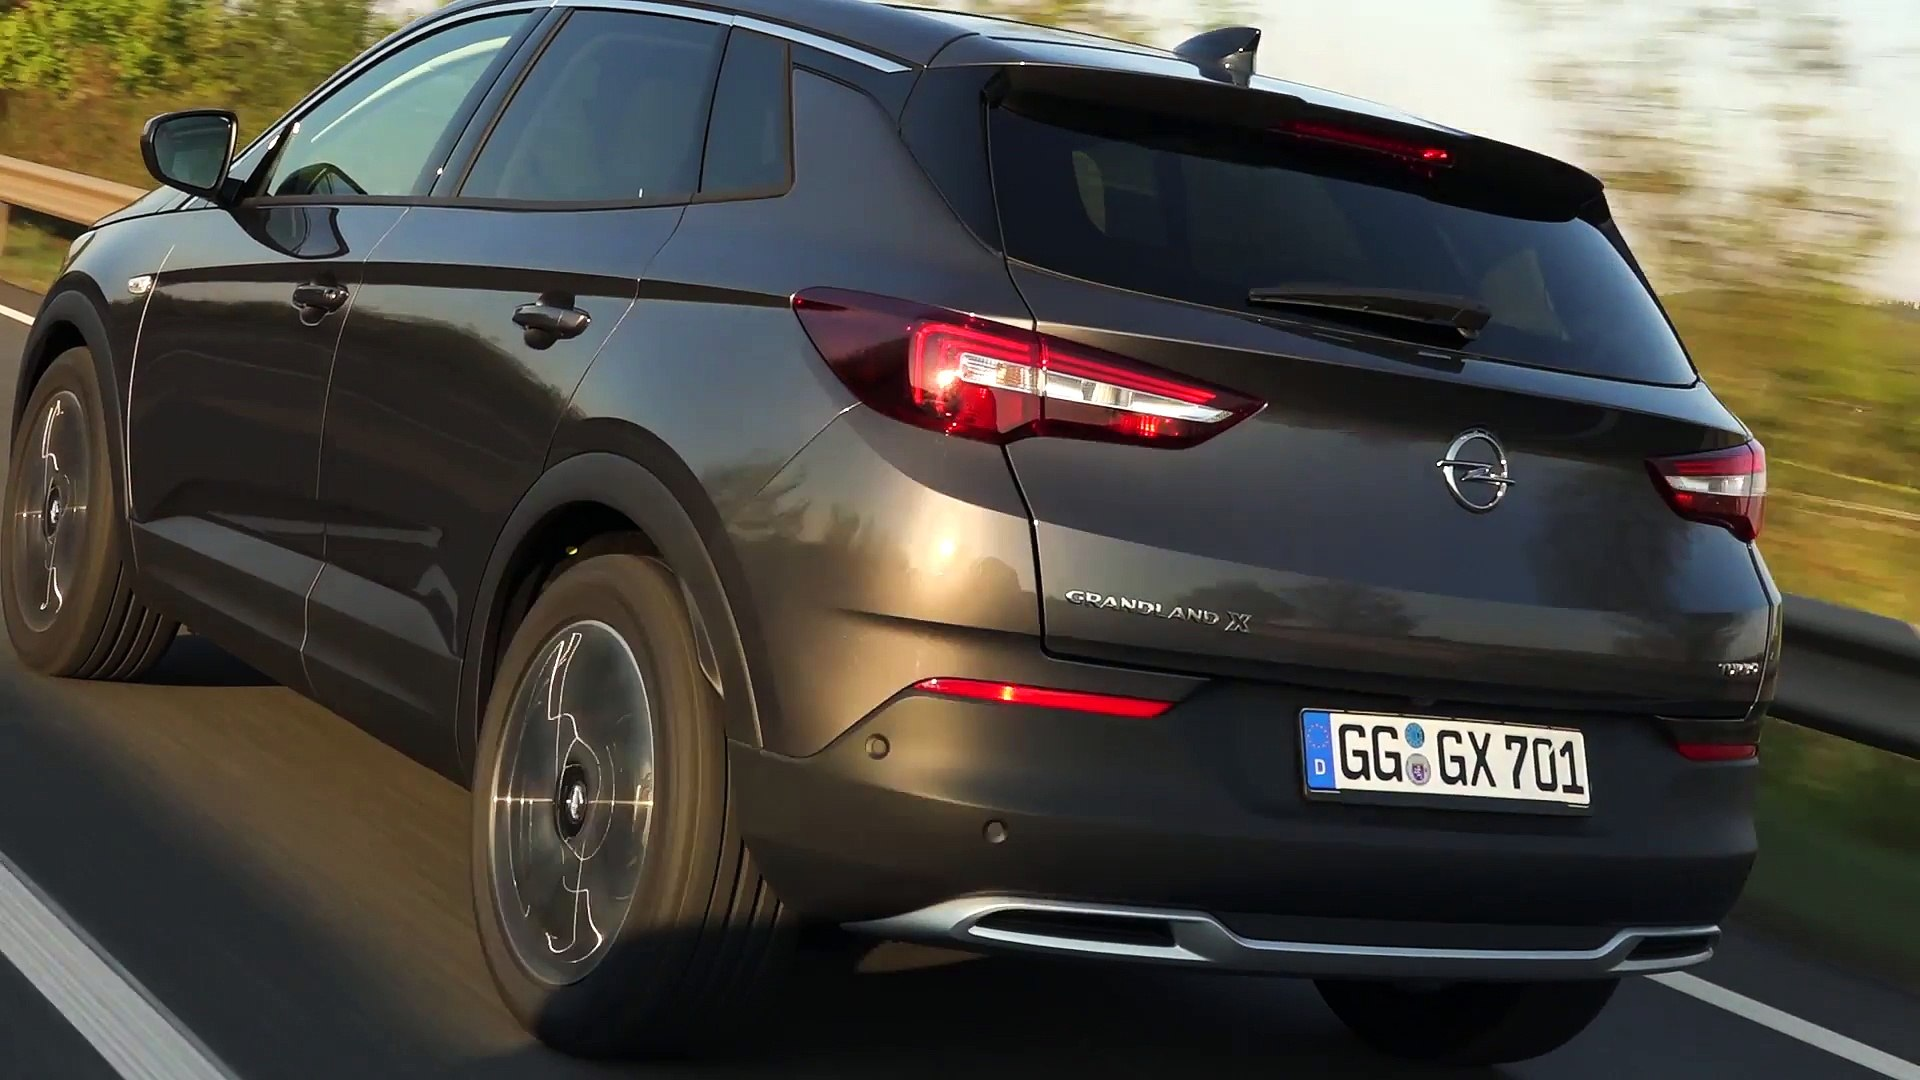 Opel Grandland X In Grey Exterior Design Video Dailymotion